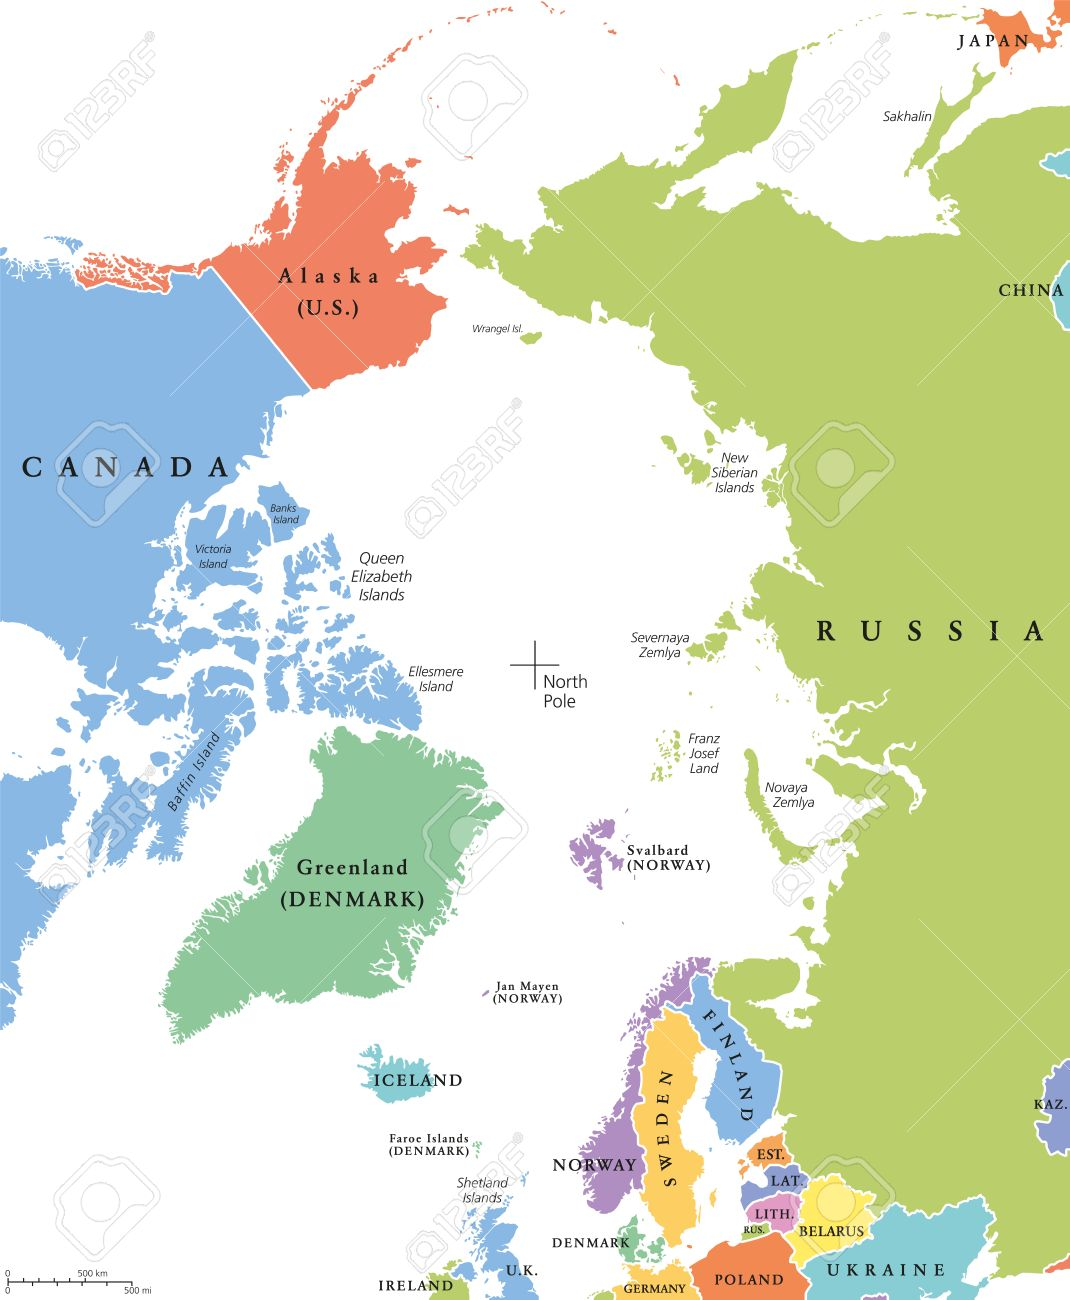 Arctic region single states and north pole political map nations arctic region single states and north pole political map nations in different colors with publicscrutiny Image collections